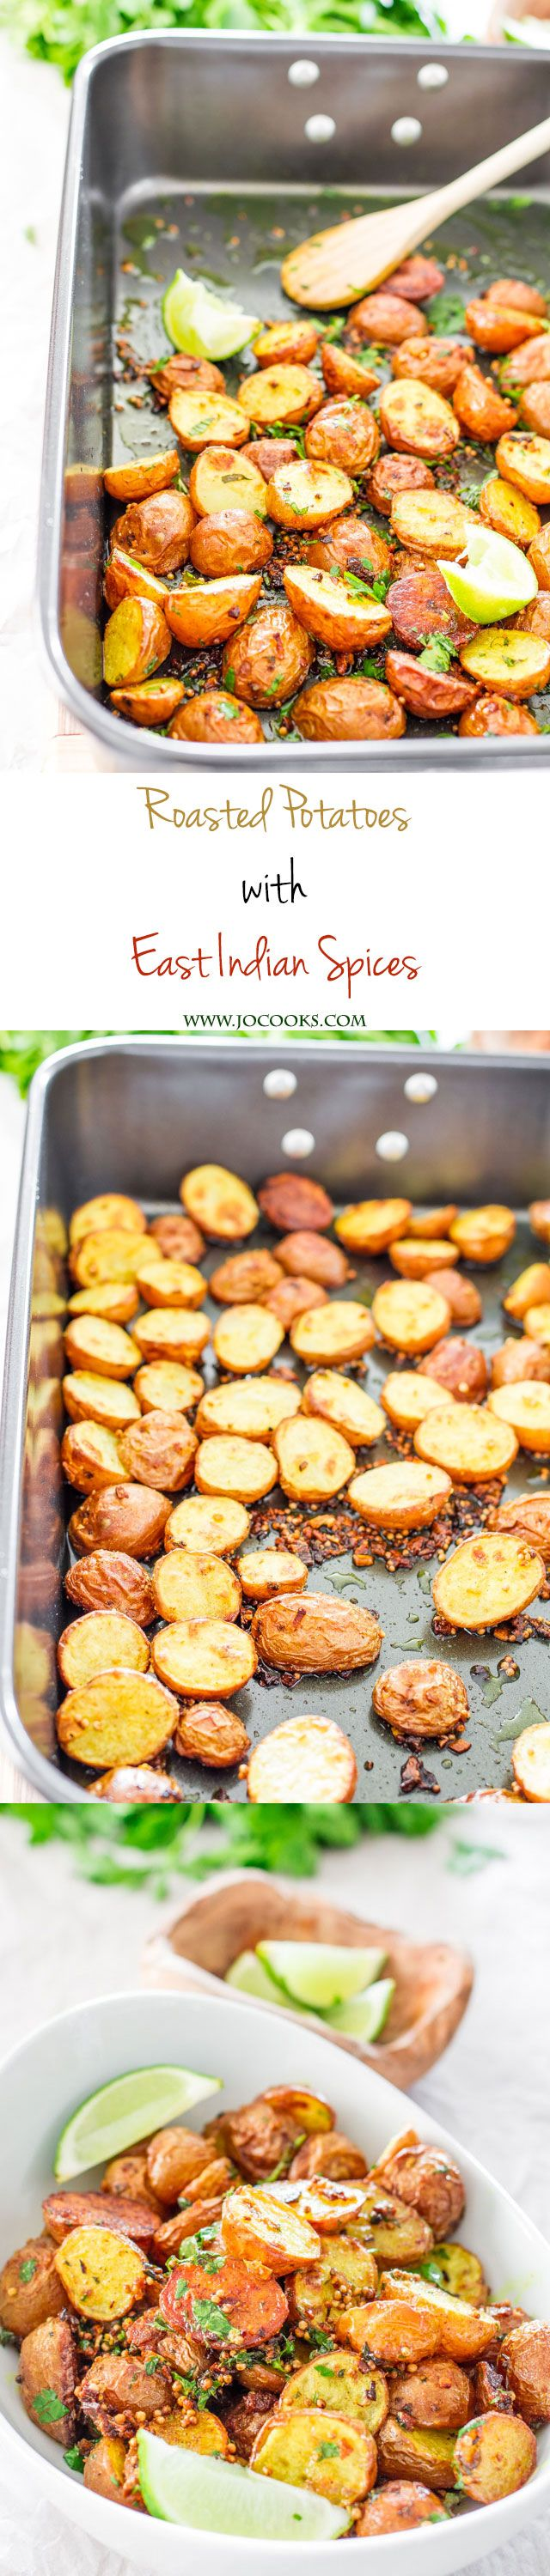 Roasted Potatoes with East Indian Spices Indian food